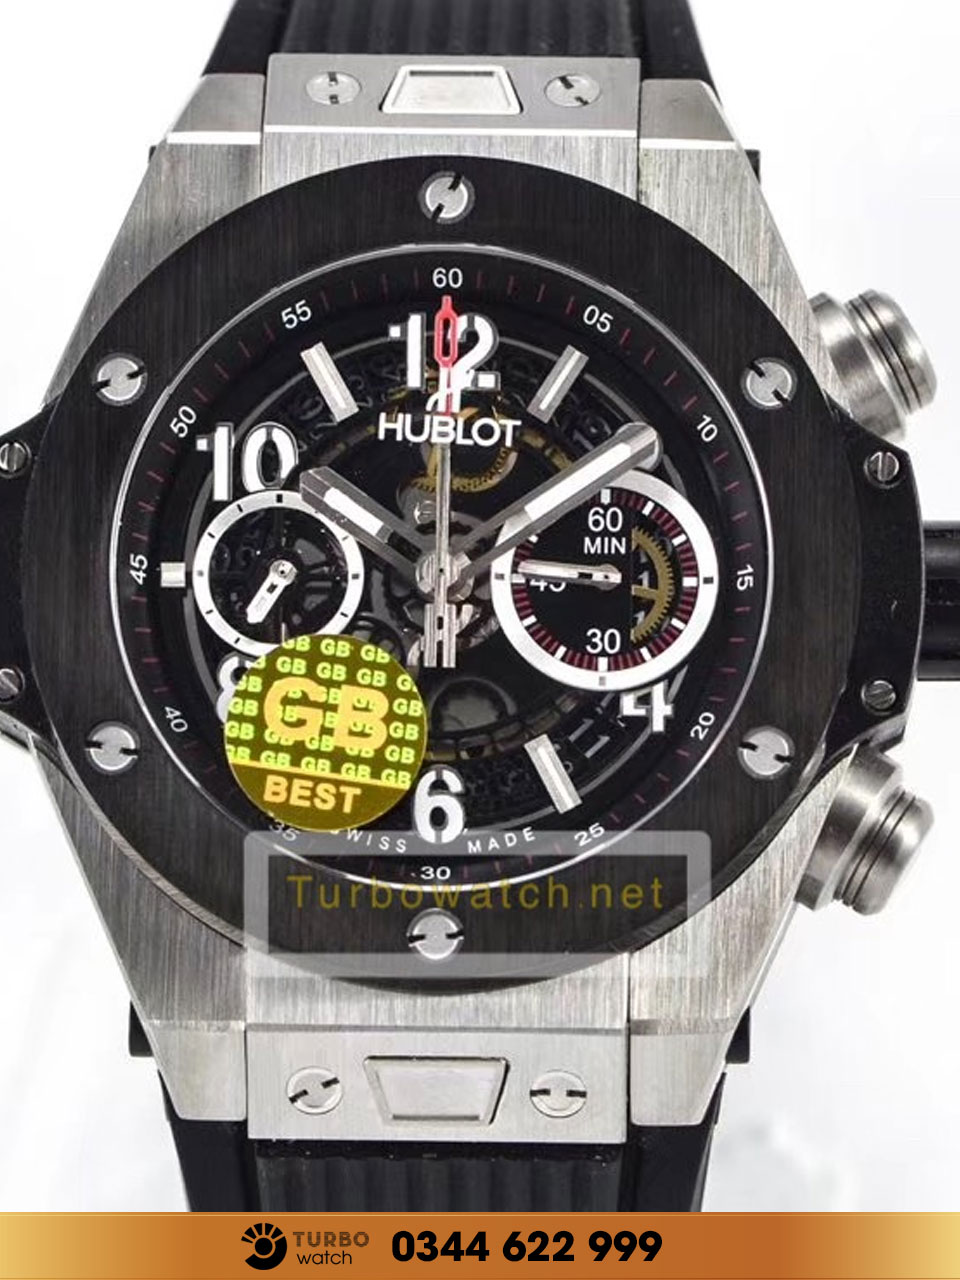 Hublot BIG BANG UNICO TITANIUM black  replica 1:1 cao cấp